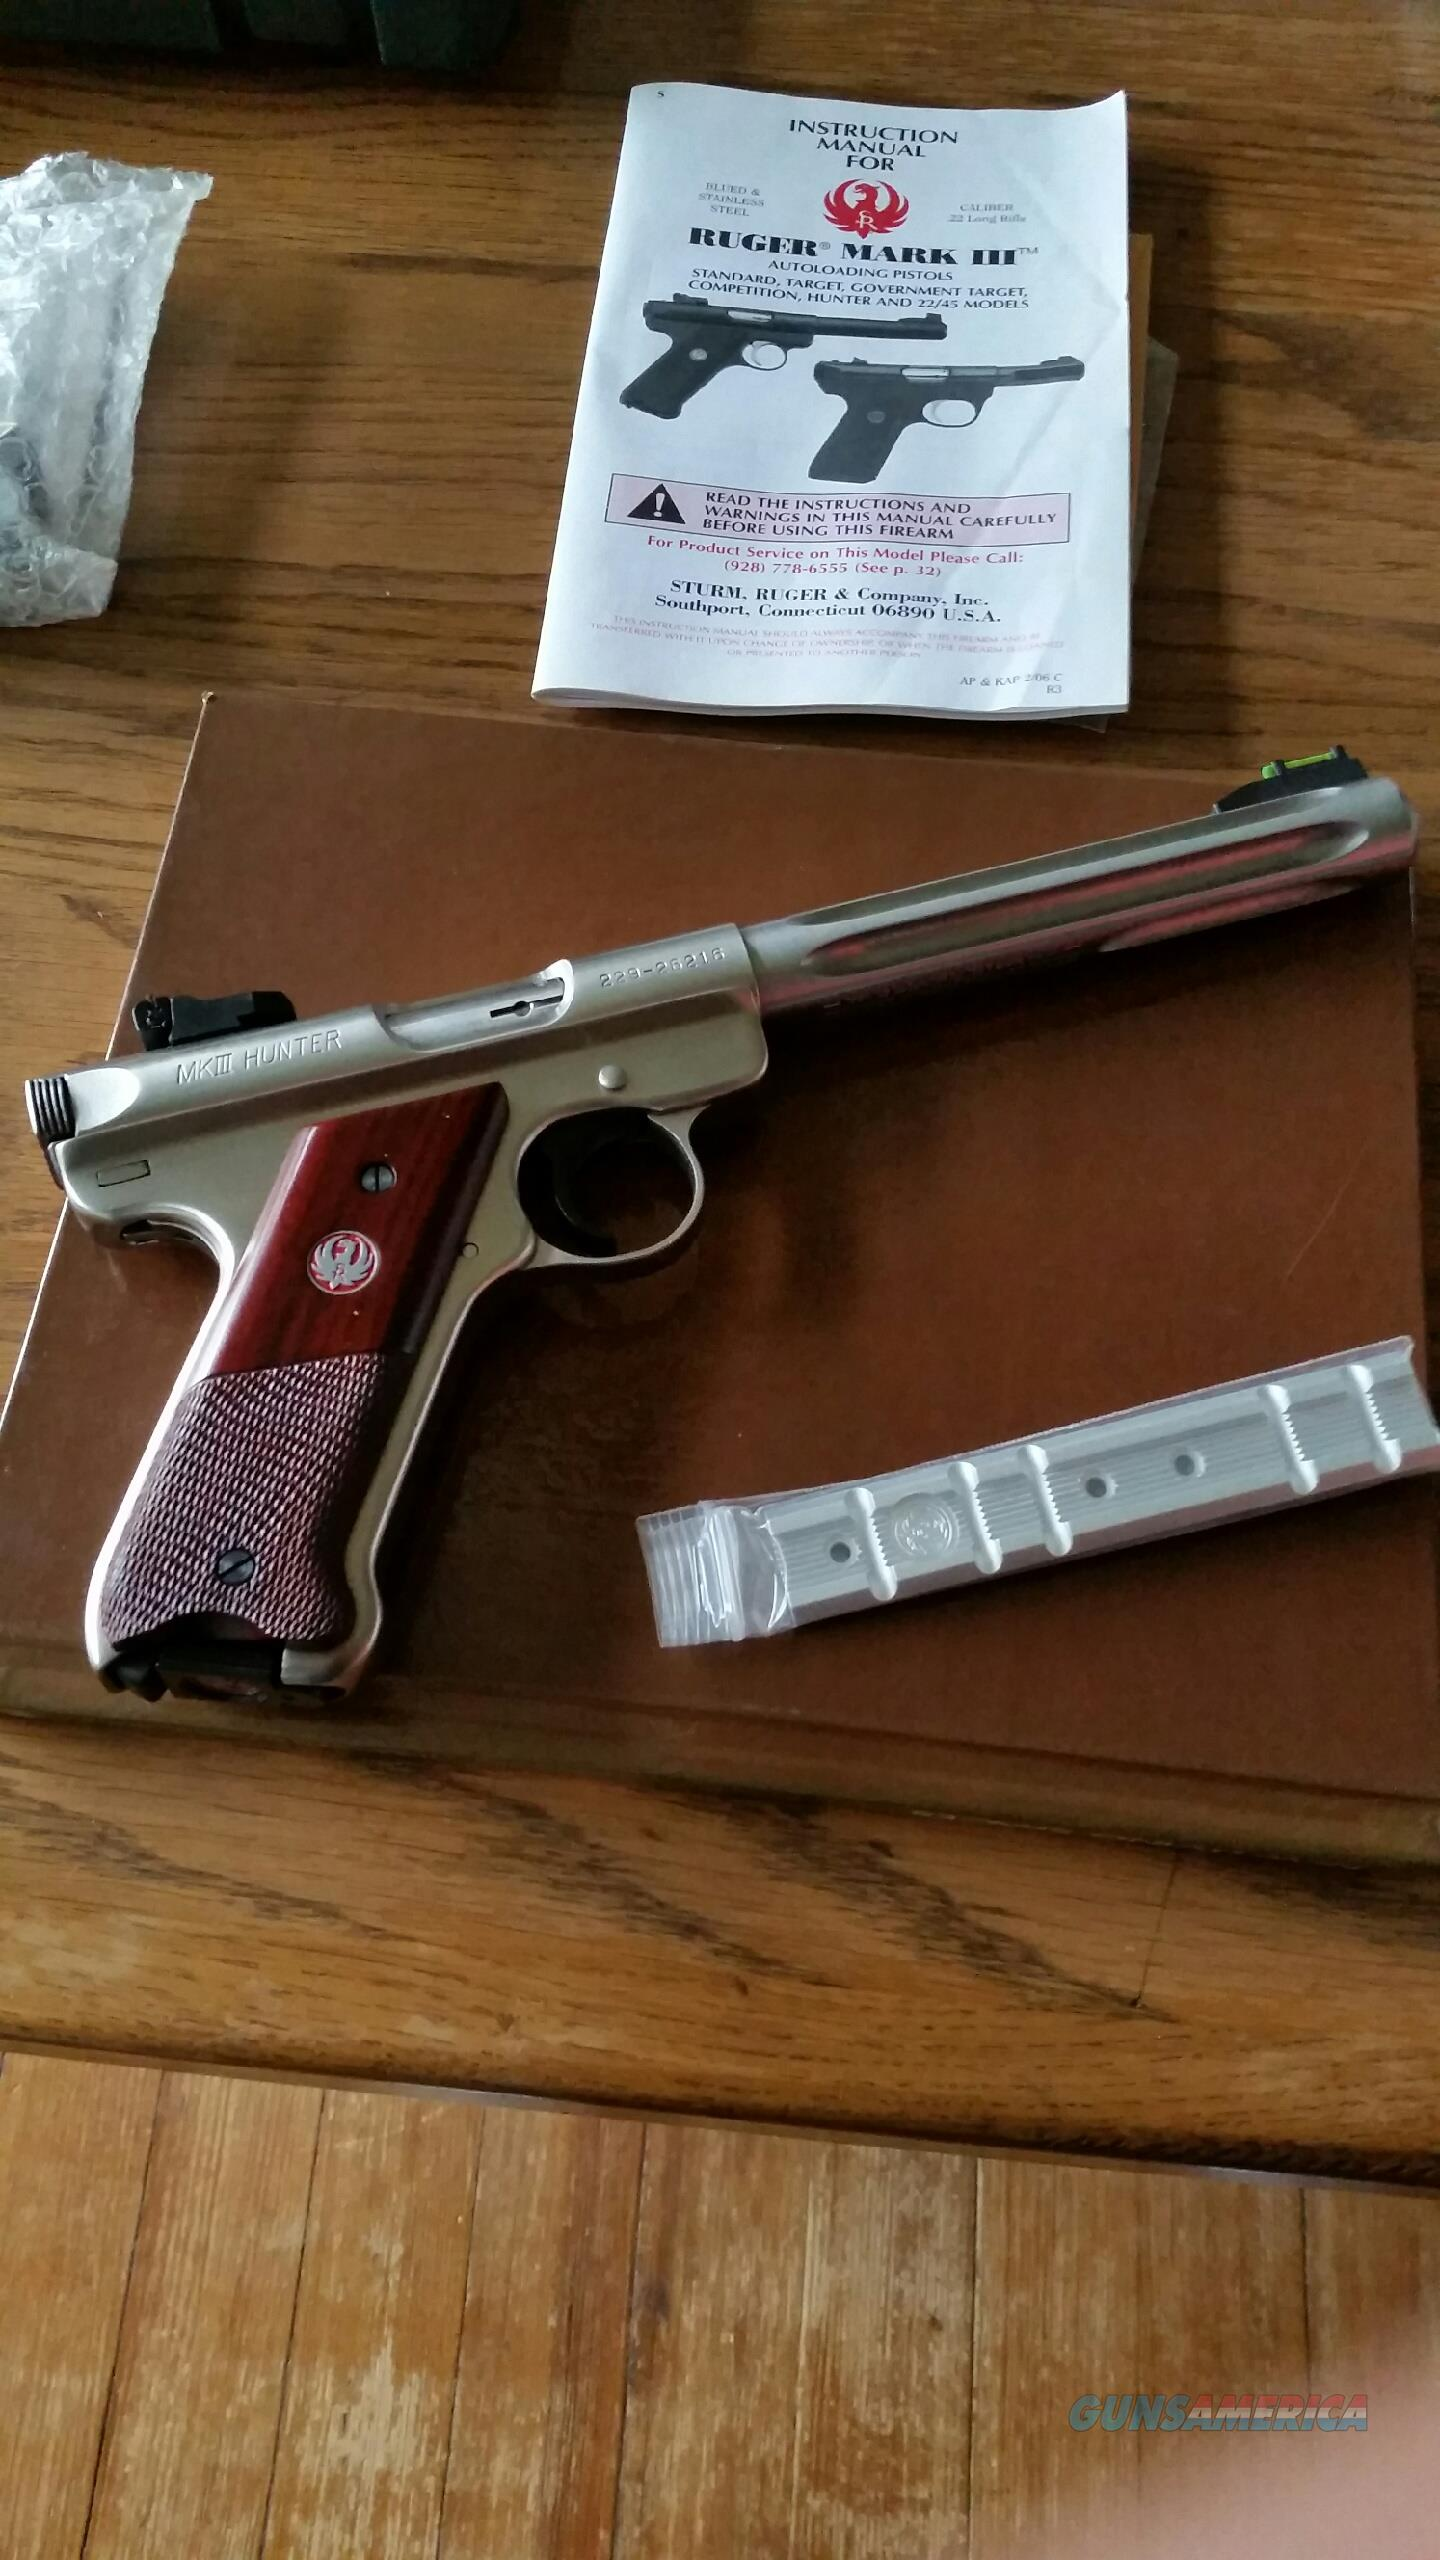 Ruger Stainless Mark-III,.22 cal.Semi-auto pistol  Guns > Pistols > Ruger Semi-Auto Pistols > Mark I/II/III Family